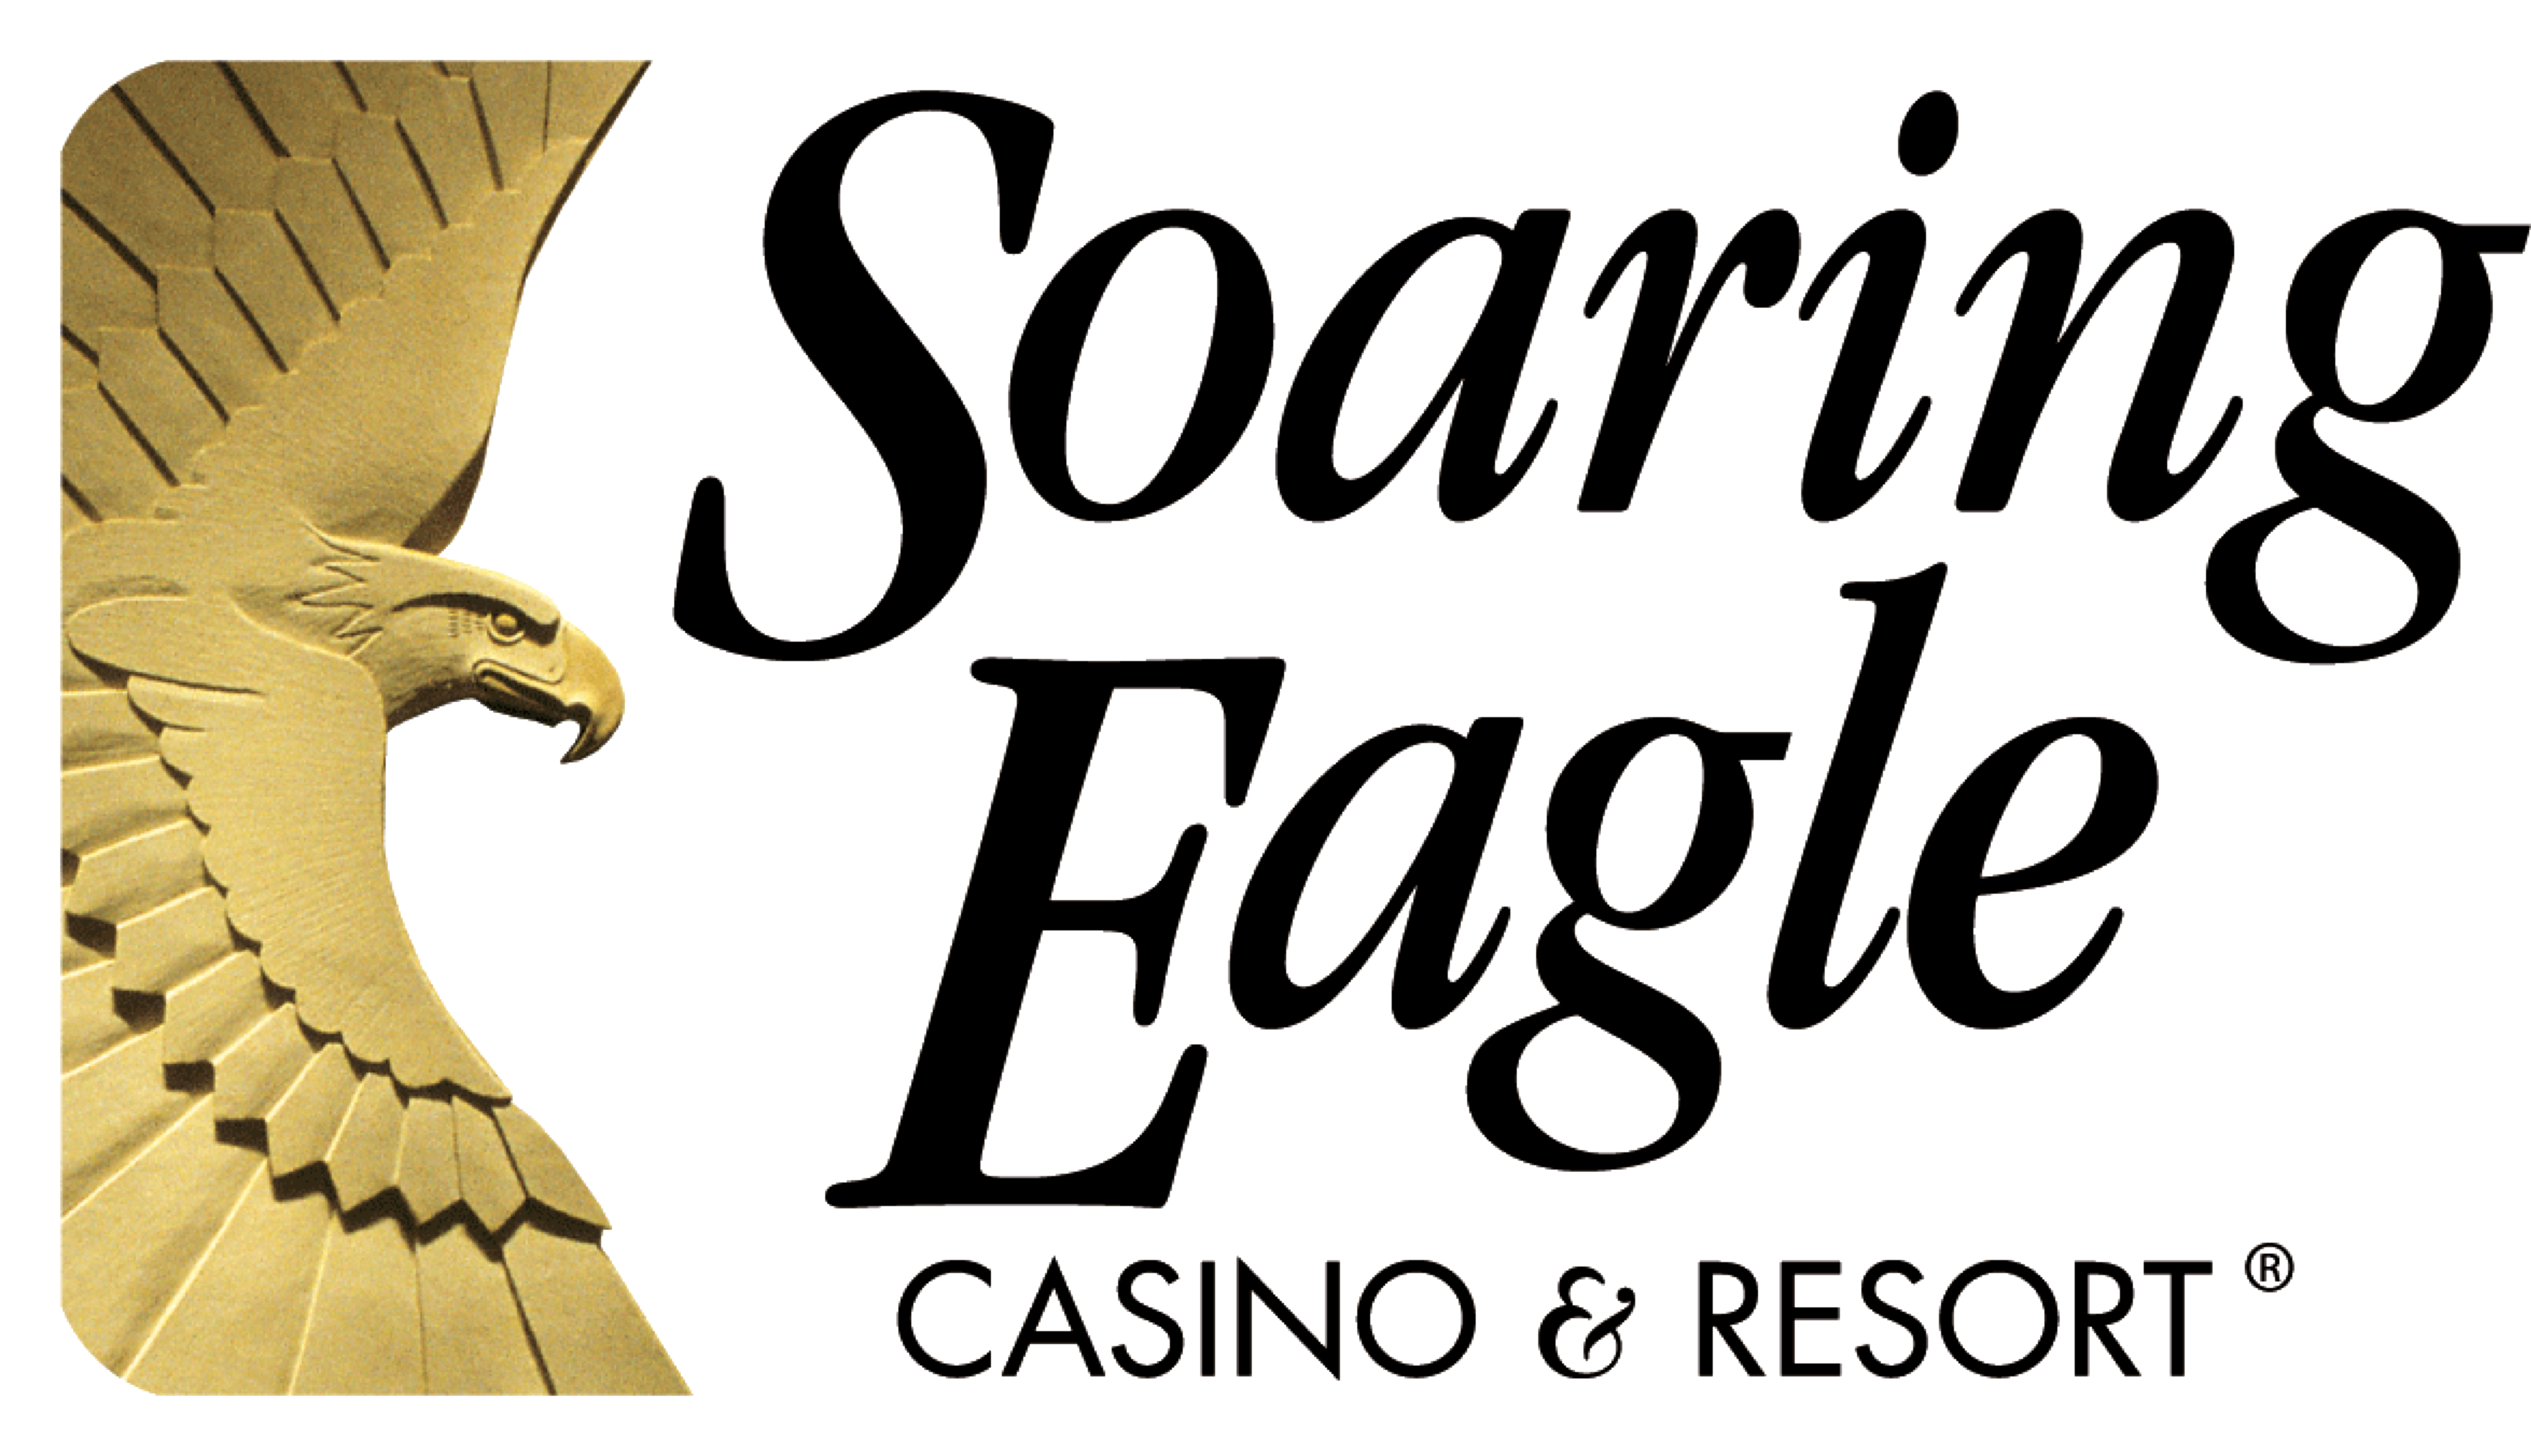 Soaring eagle casino phone number casino grand prive